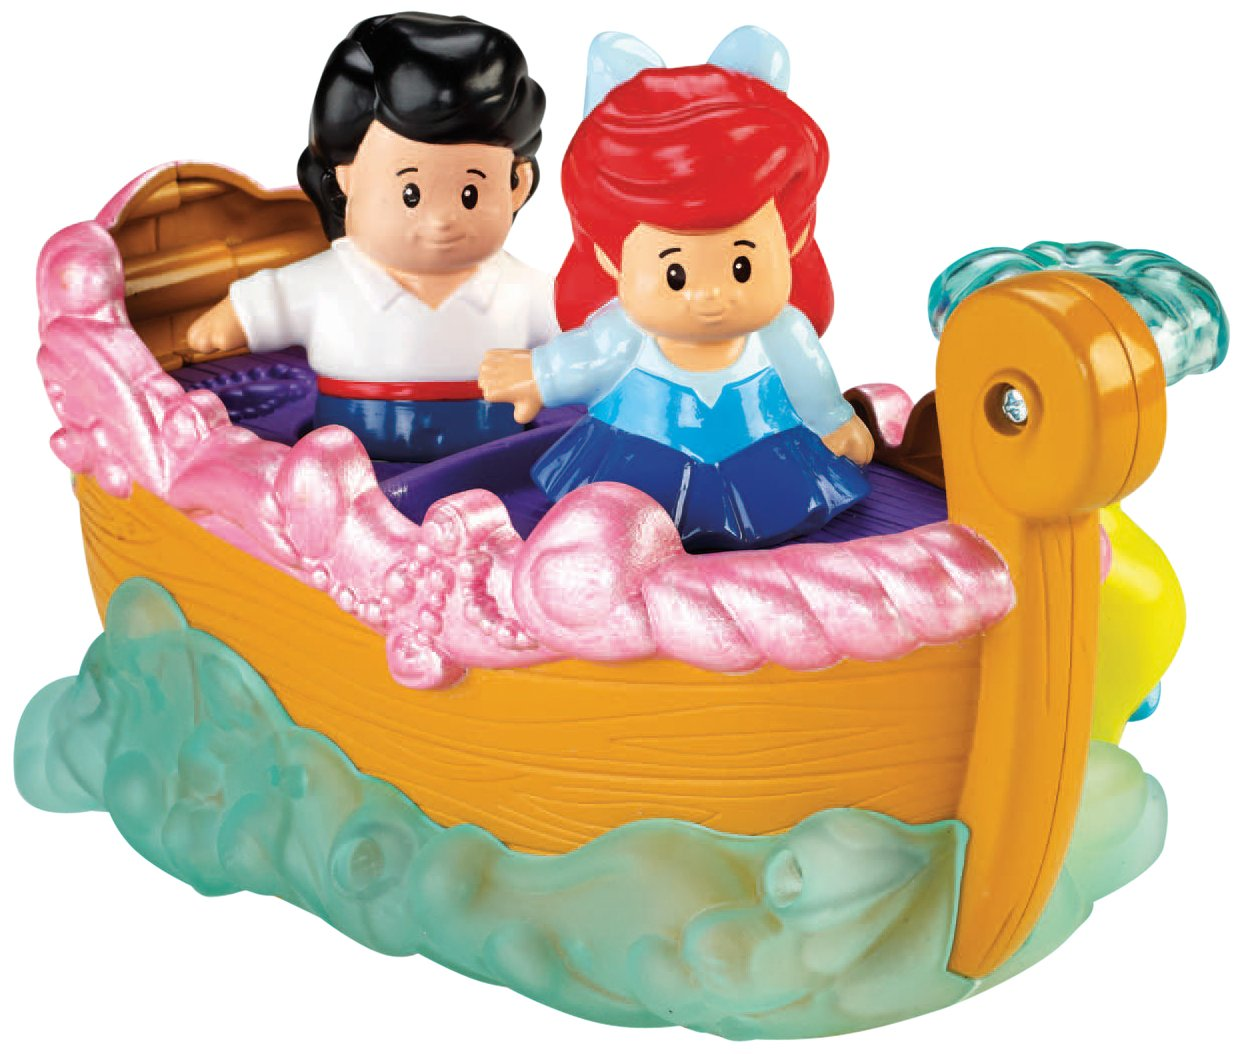 Fisher-Price Little People Disney Princess Ariel's Boat Ride Toy